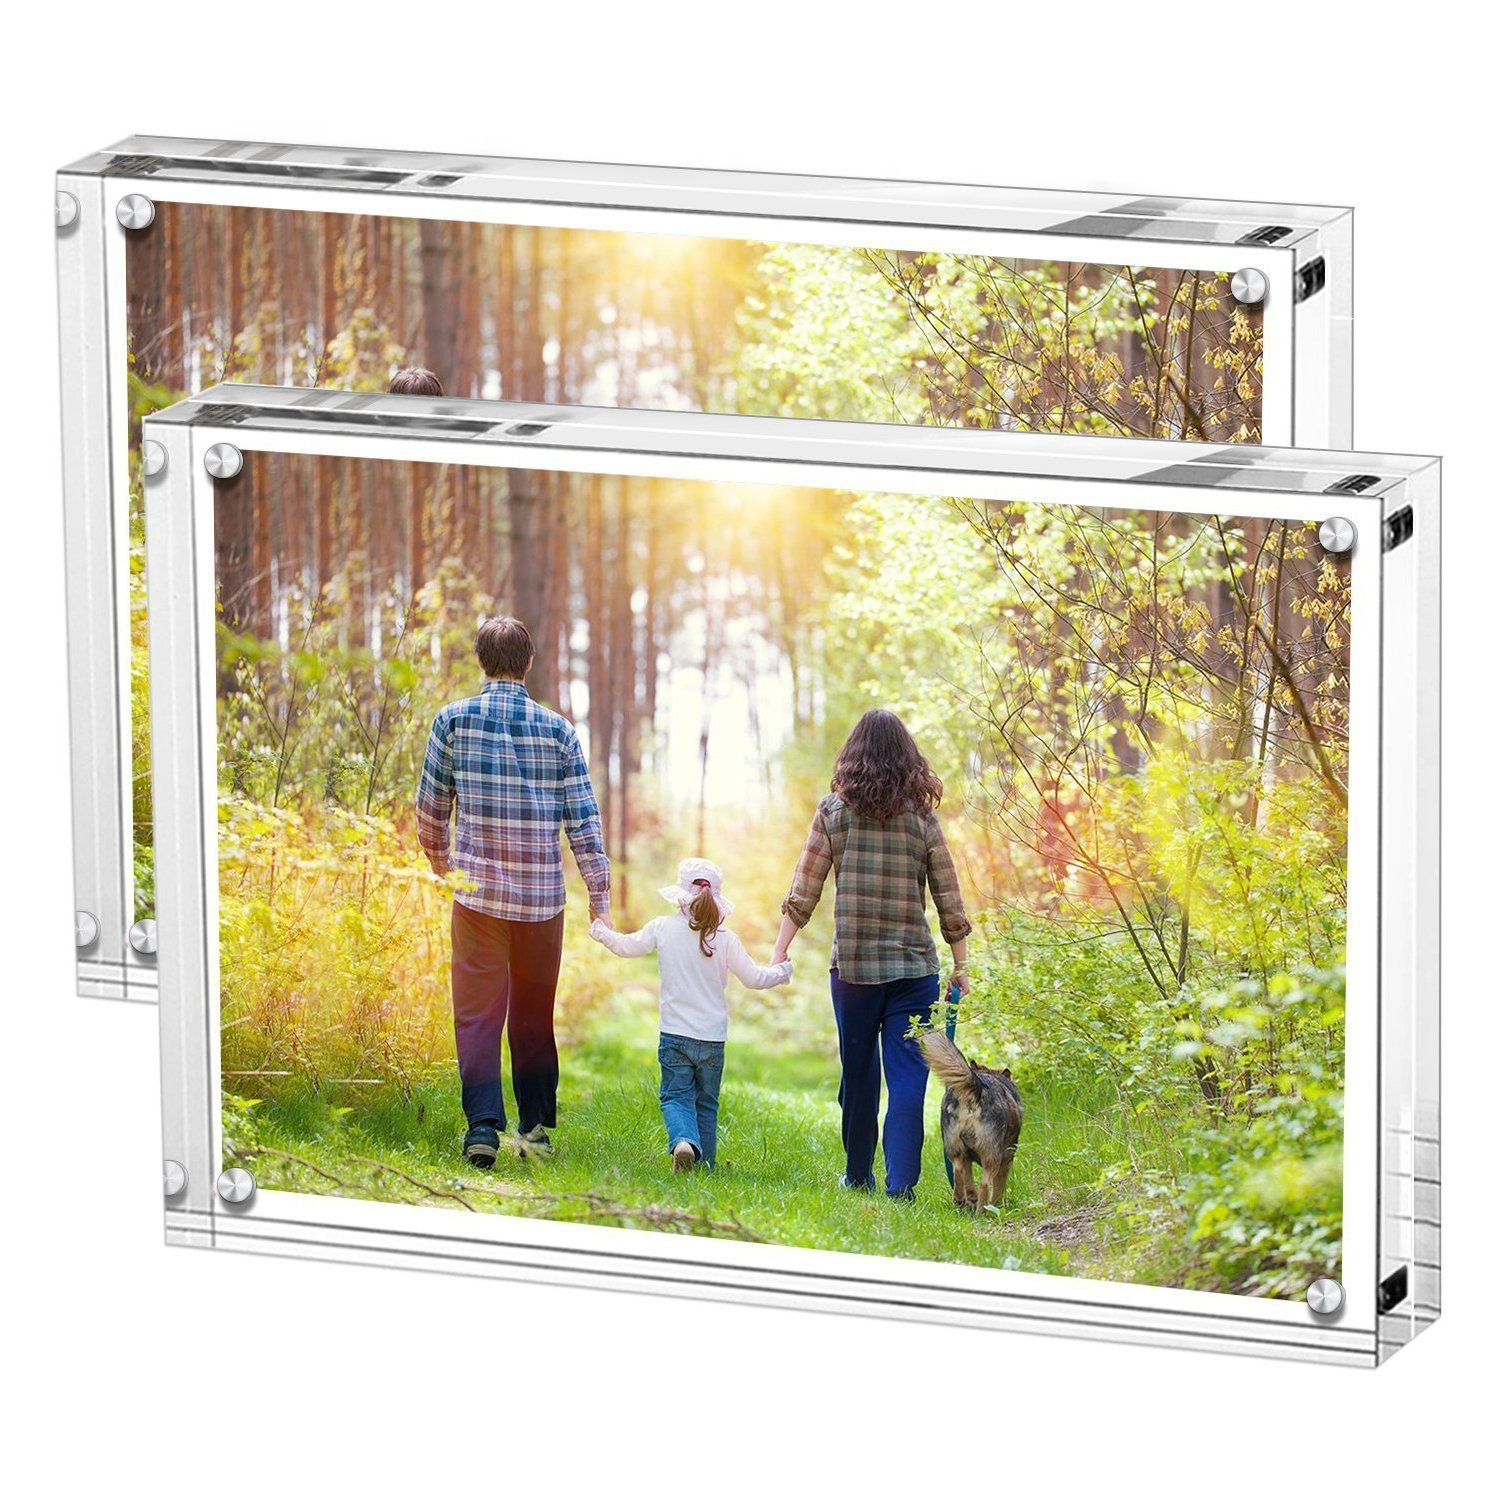 Boxalls Acrylic Picture Frame, Clear Frames Double Sided, Free Stand in Desk, Table and Cabinet (3.5x5inch-2Packs)